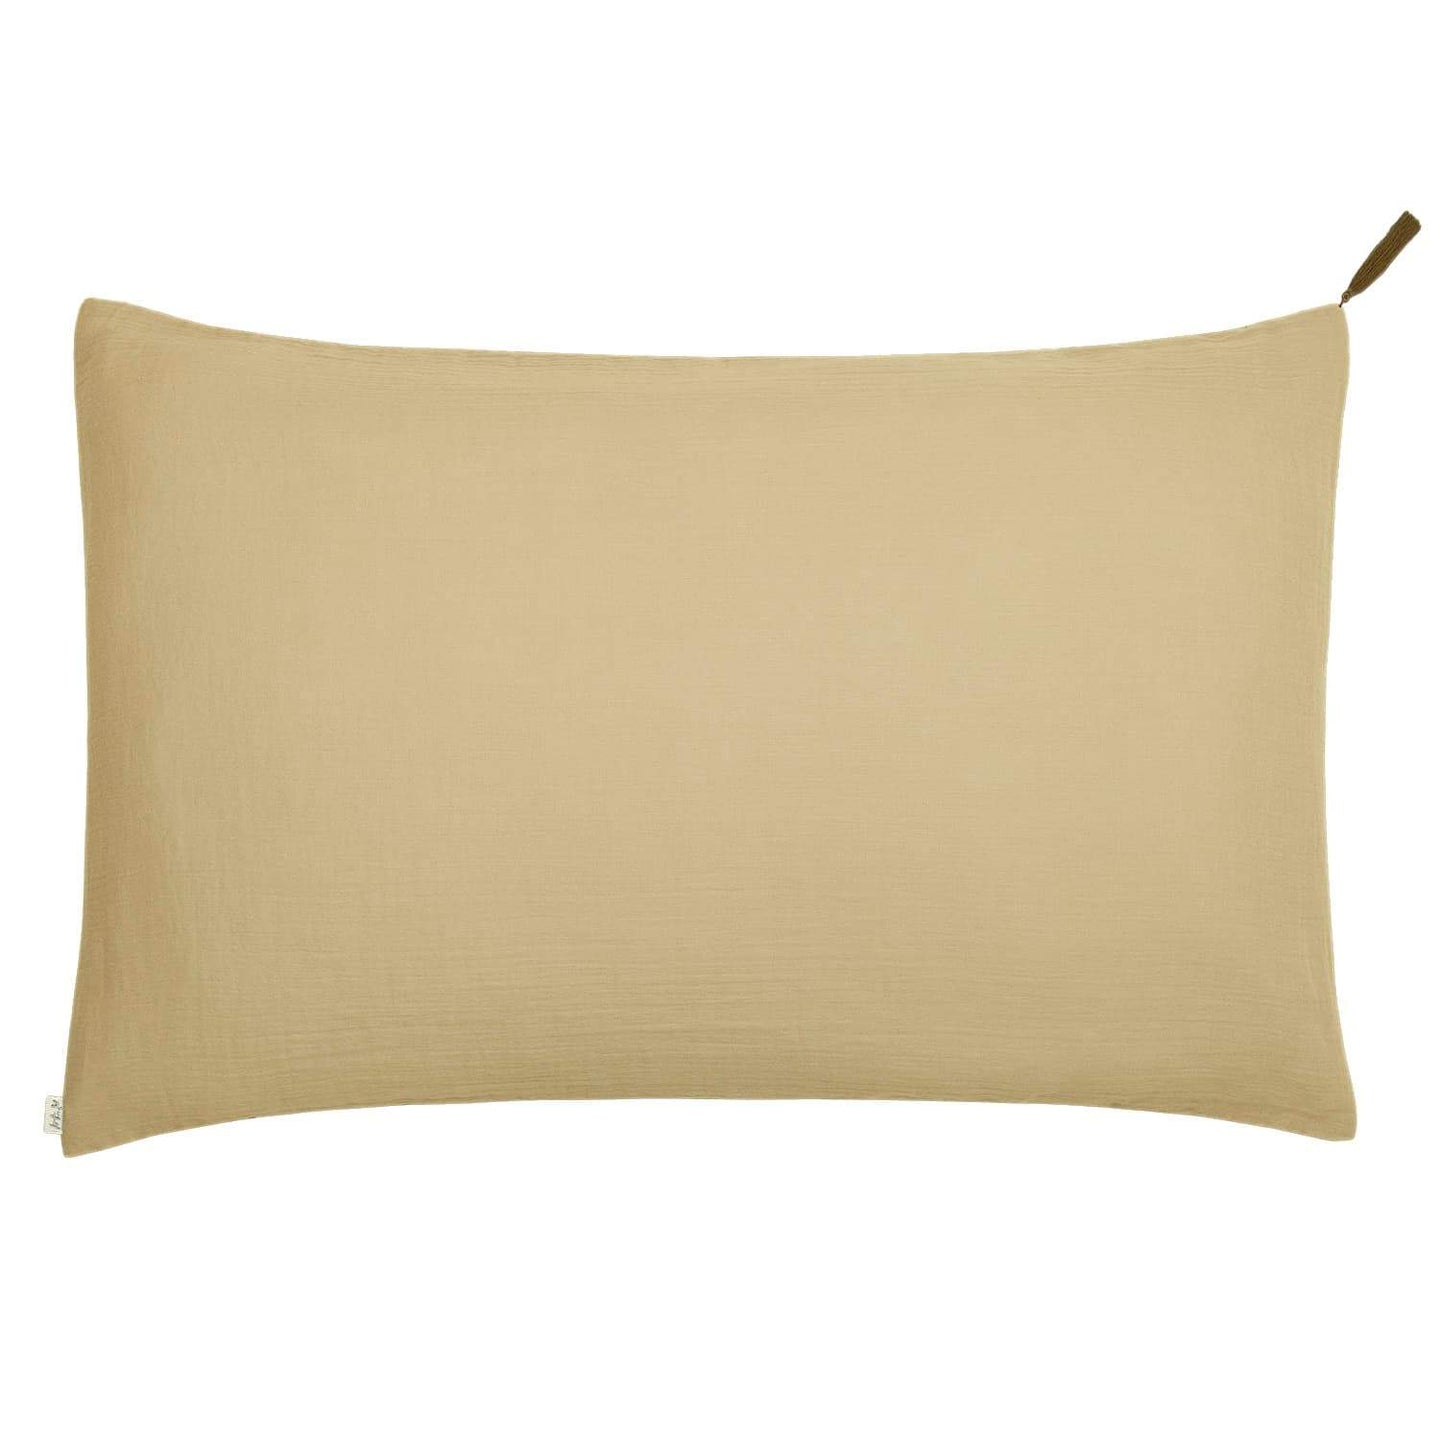 Pillow Case 50x75cm